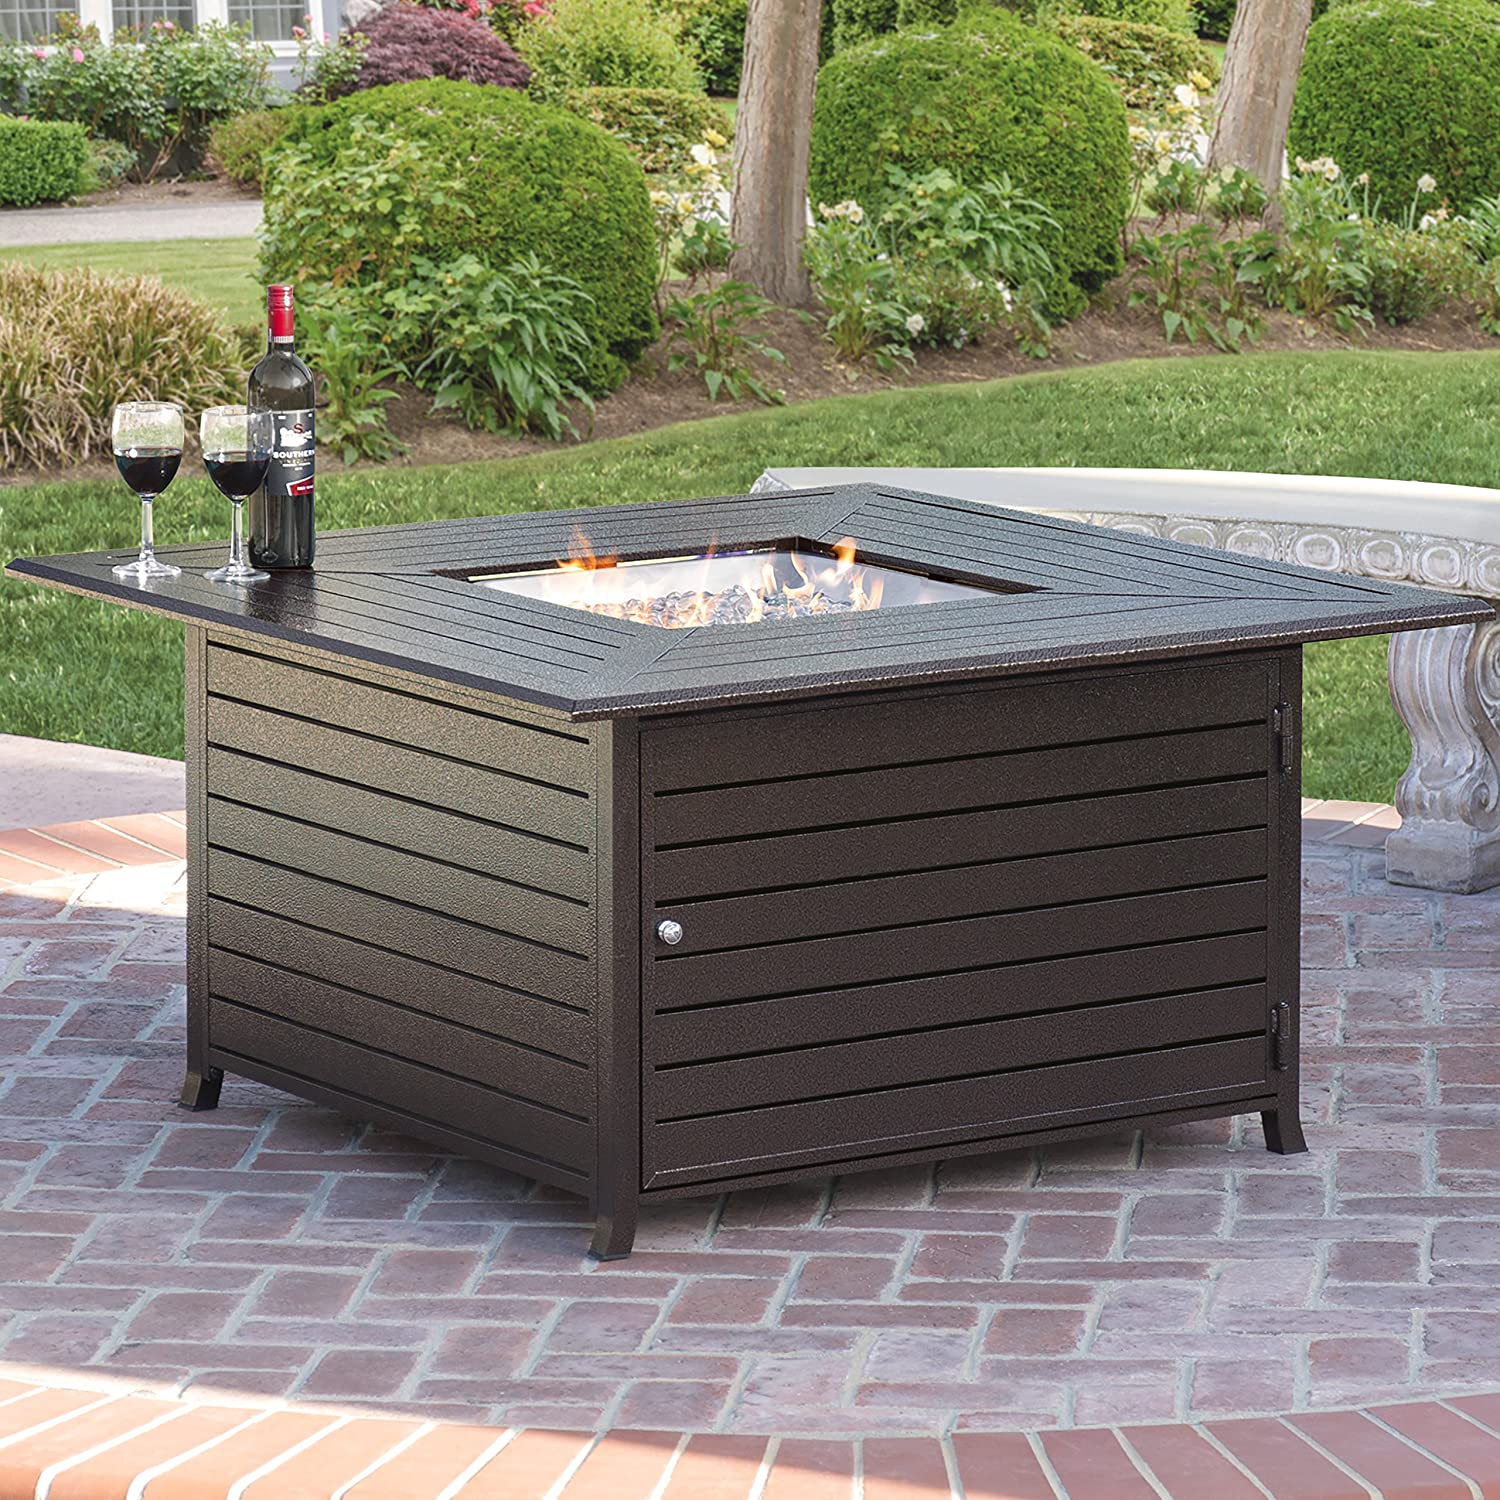 Aluminum Gas Outdoor Fire Pit Table With Cover